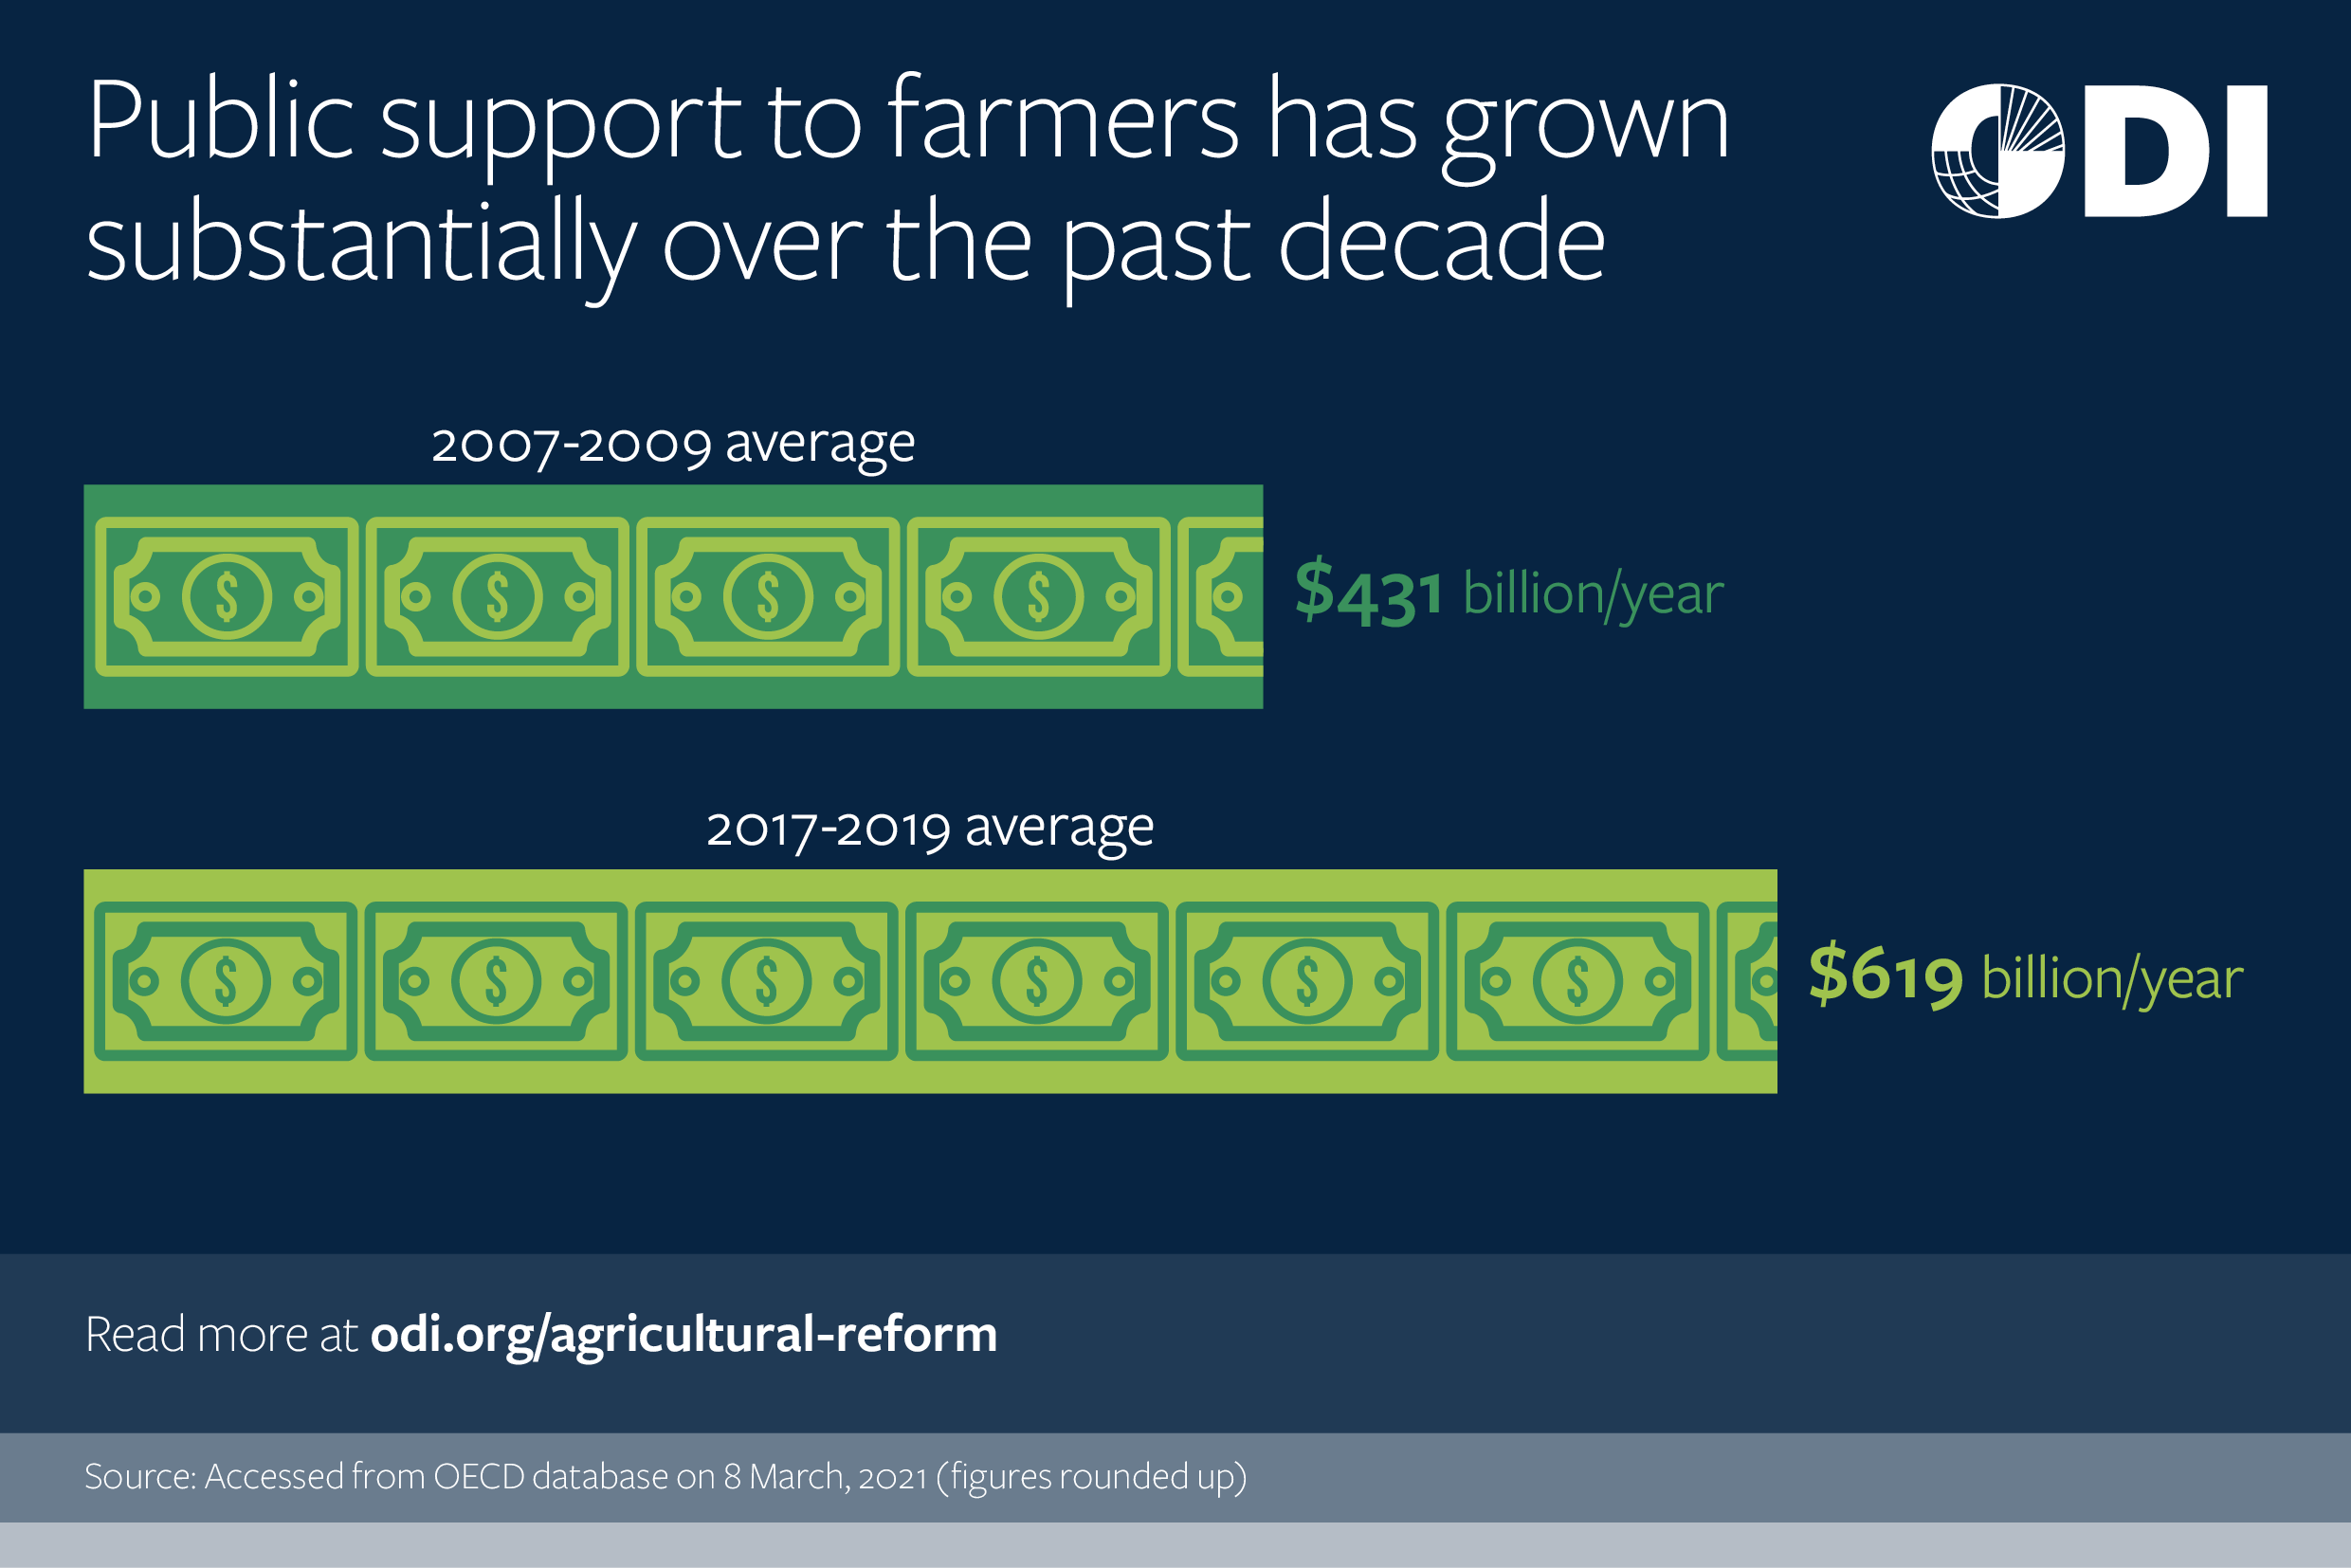 Public support to farmers has grown substantially over the past decade.